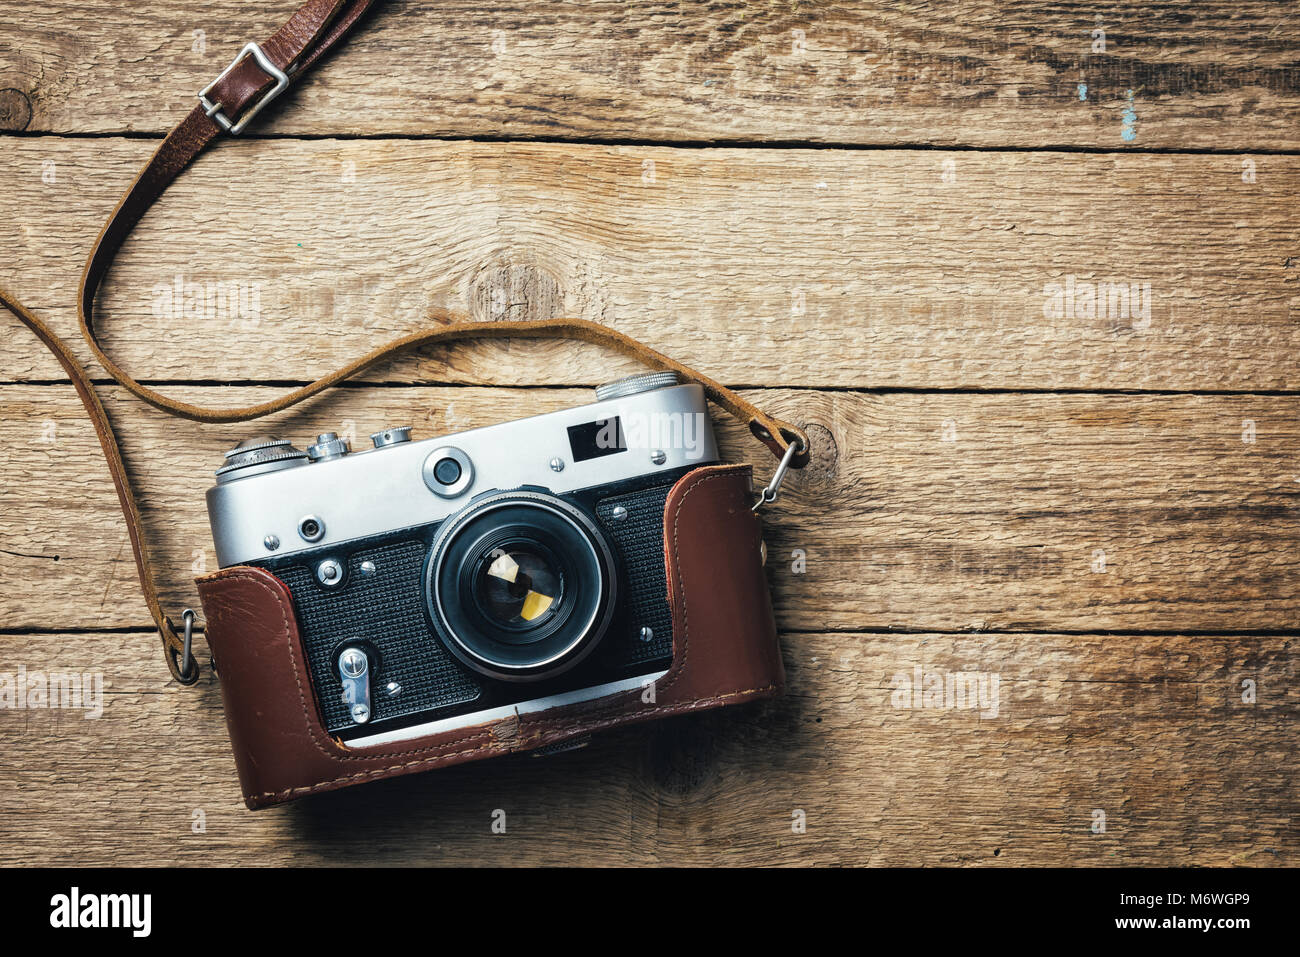 Old vintage camera photo film Photo Stock